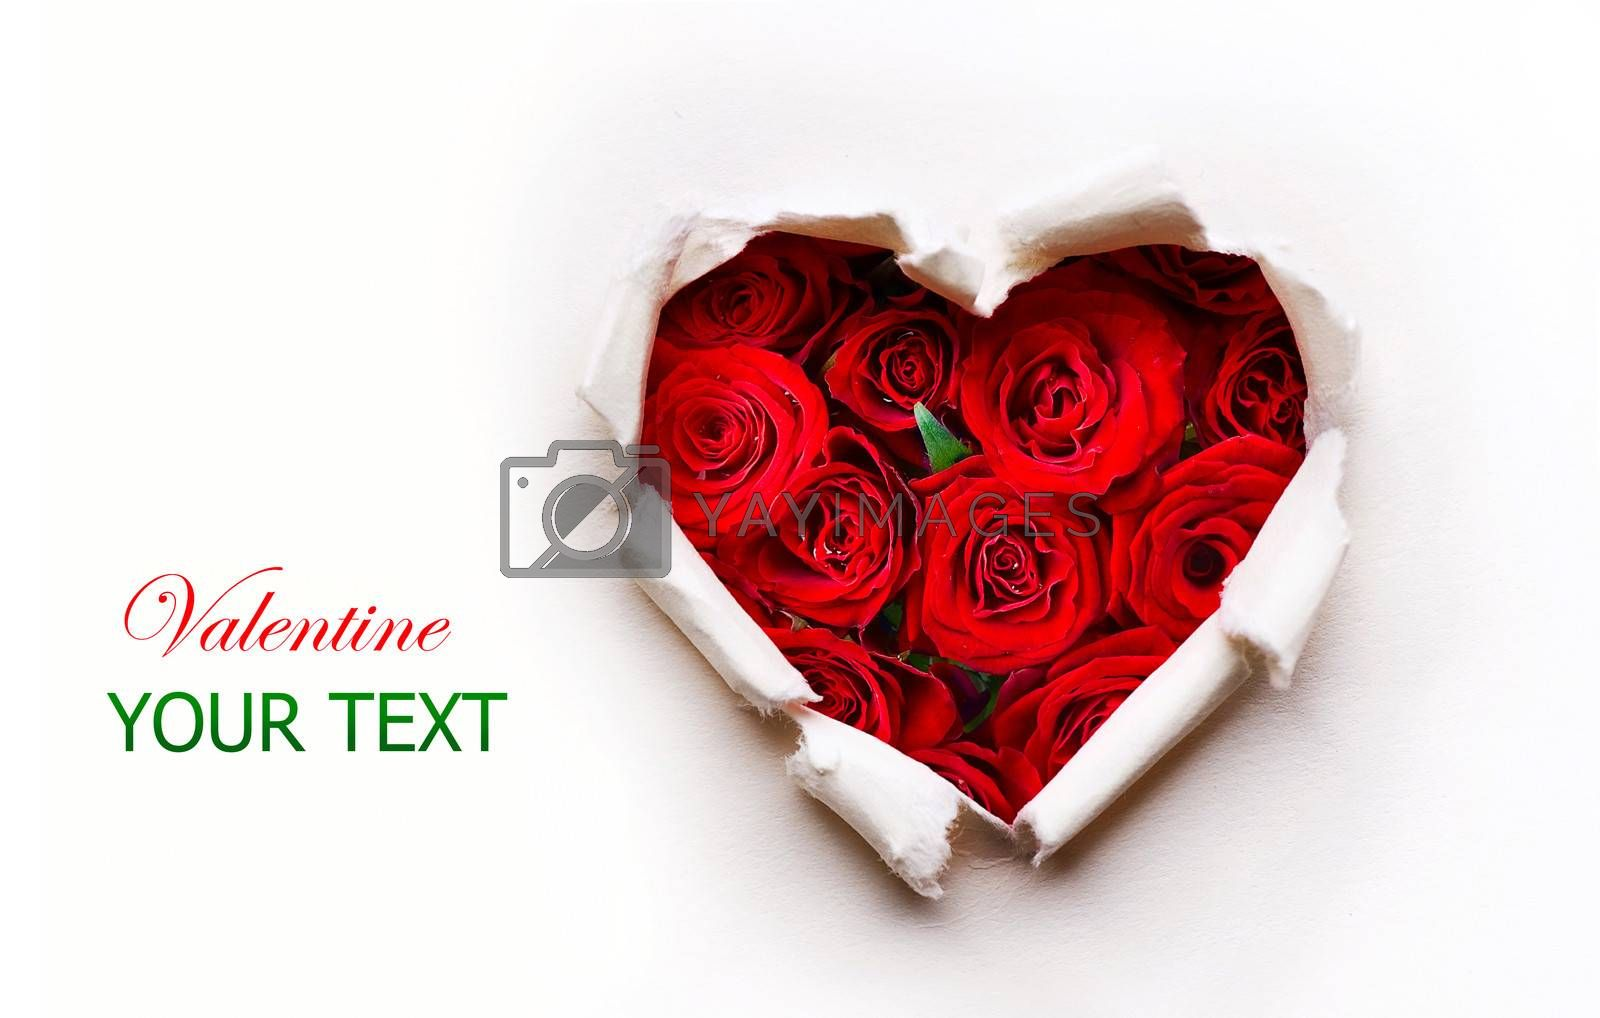 Paper Valentines Heart with Red Rose Flowers Bouquet